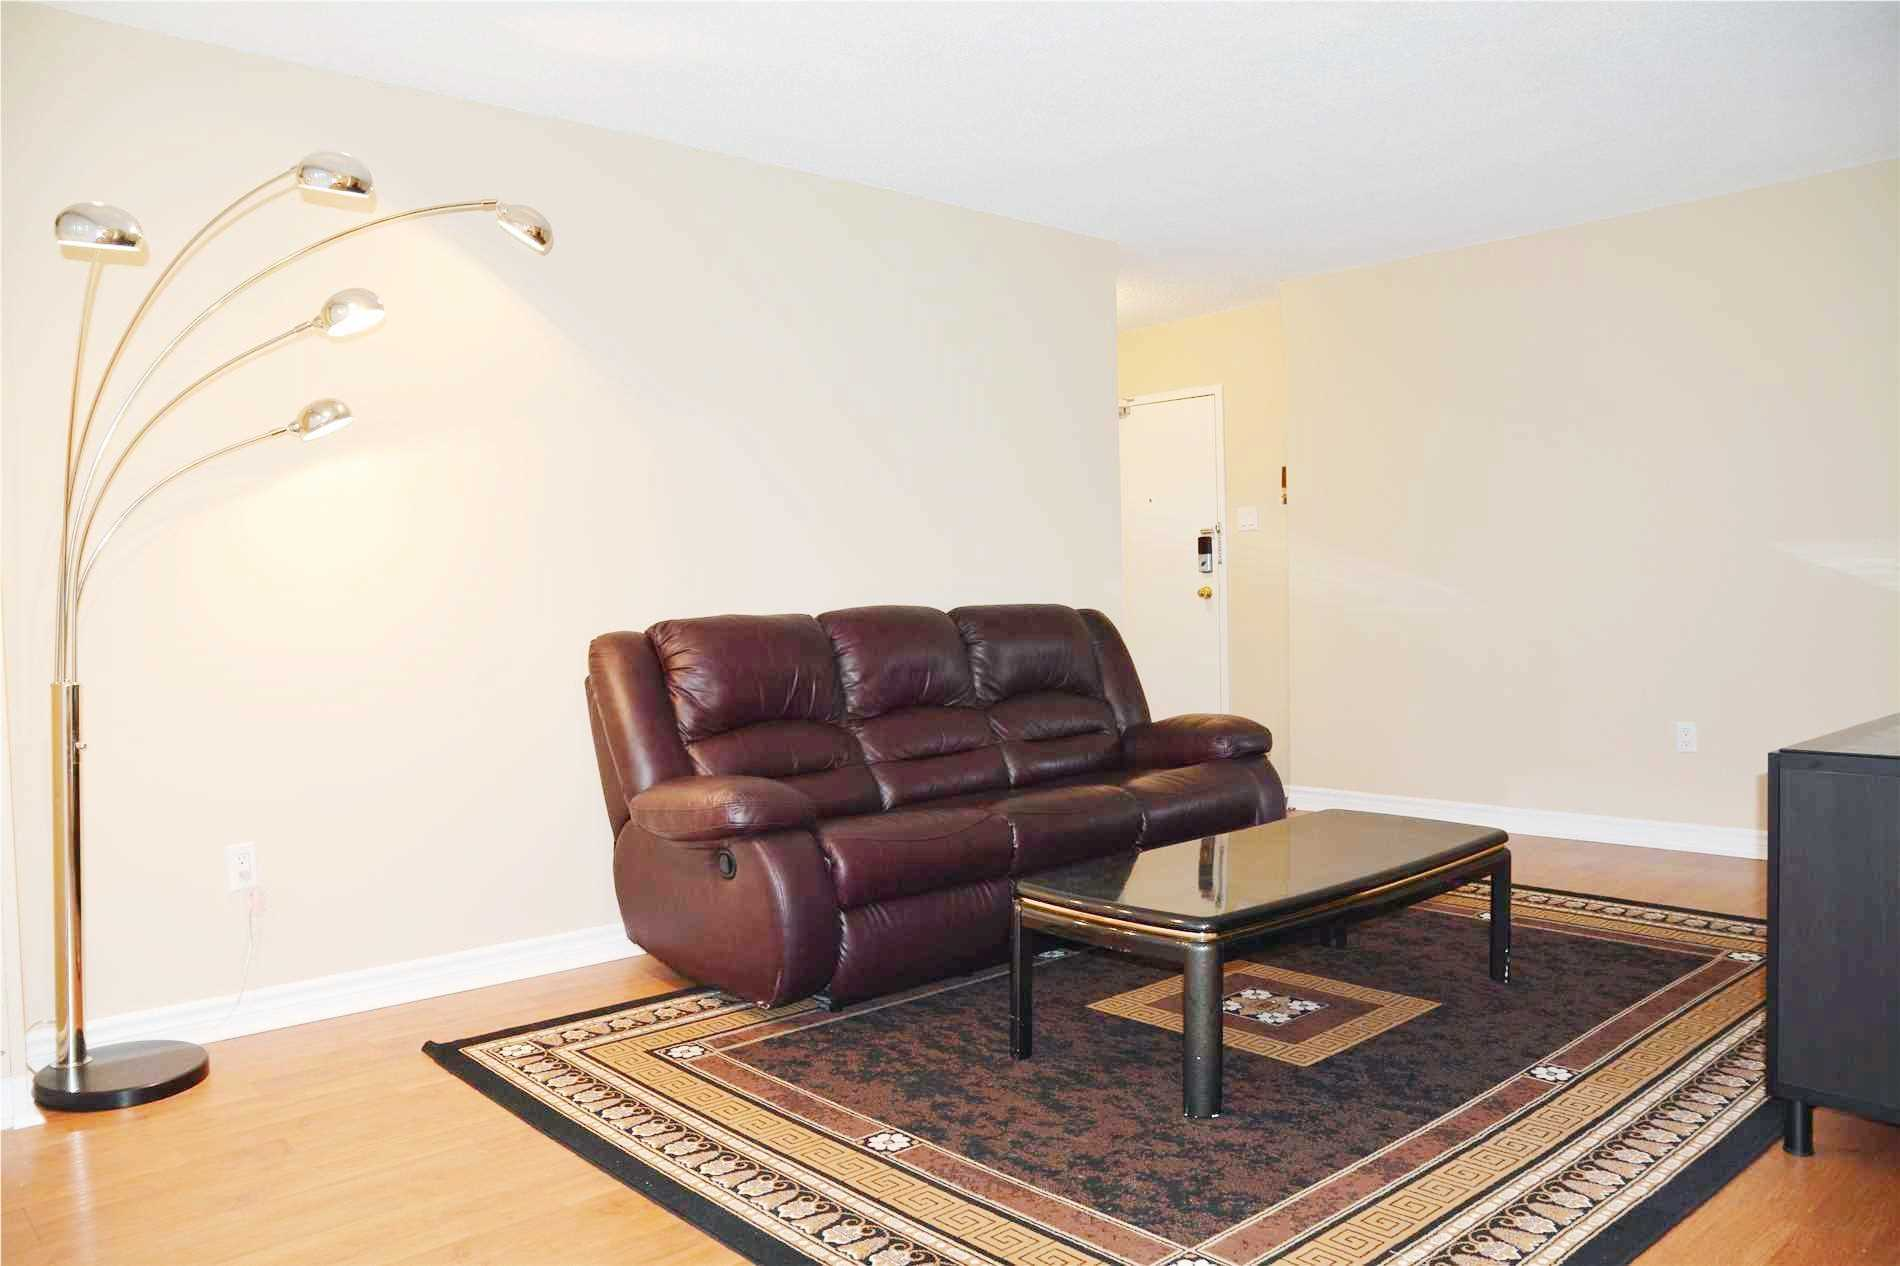 Image 8 of 14 showing inside of 3 Bedroom Condo Apt Apartment for Lease at 205 Hilda Ave Unit# 2104, Toronto M2M4B1